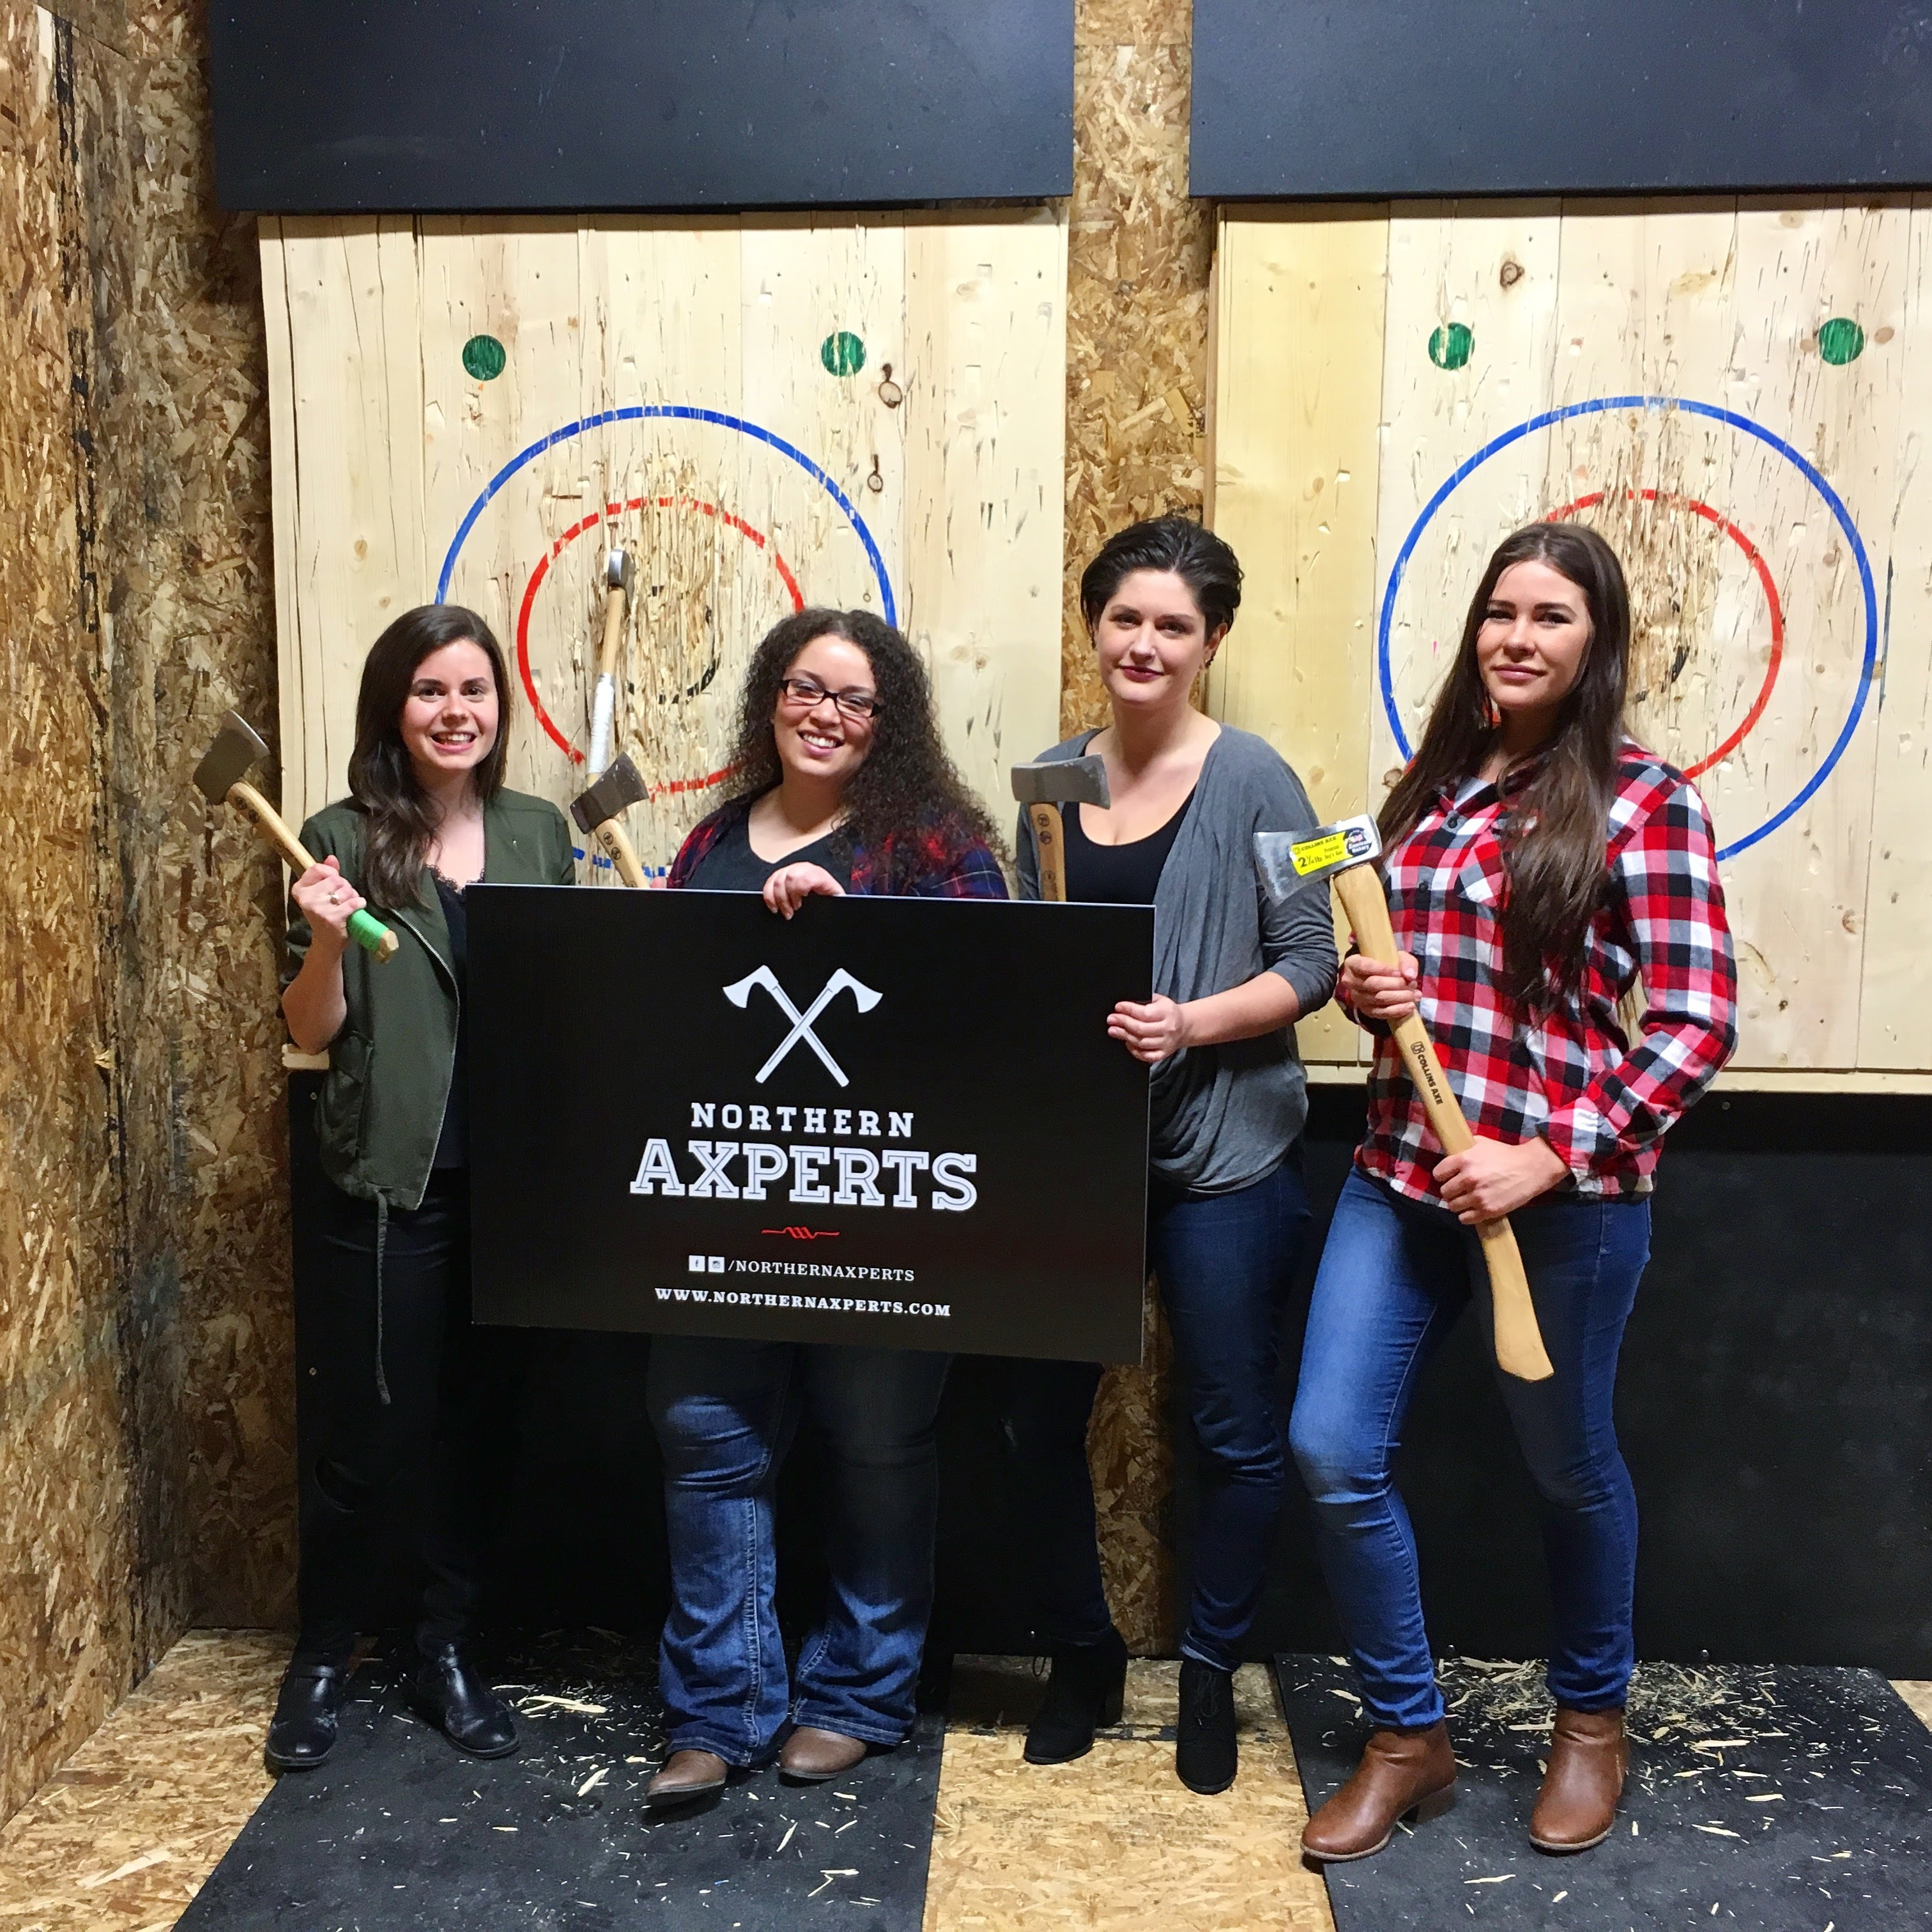 Northern Axperts bring axe-citing new sport to Sudbury.